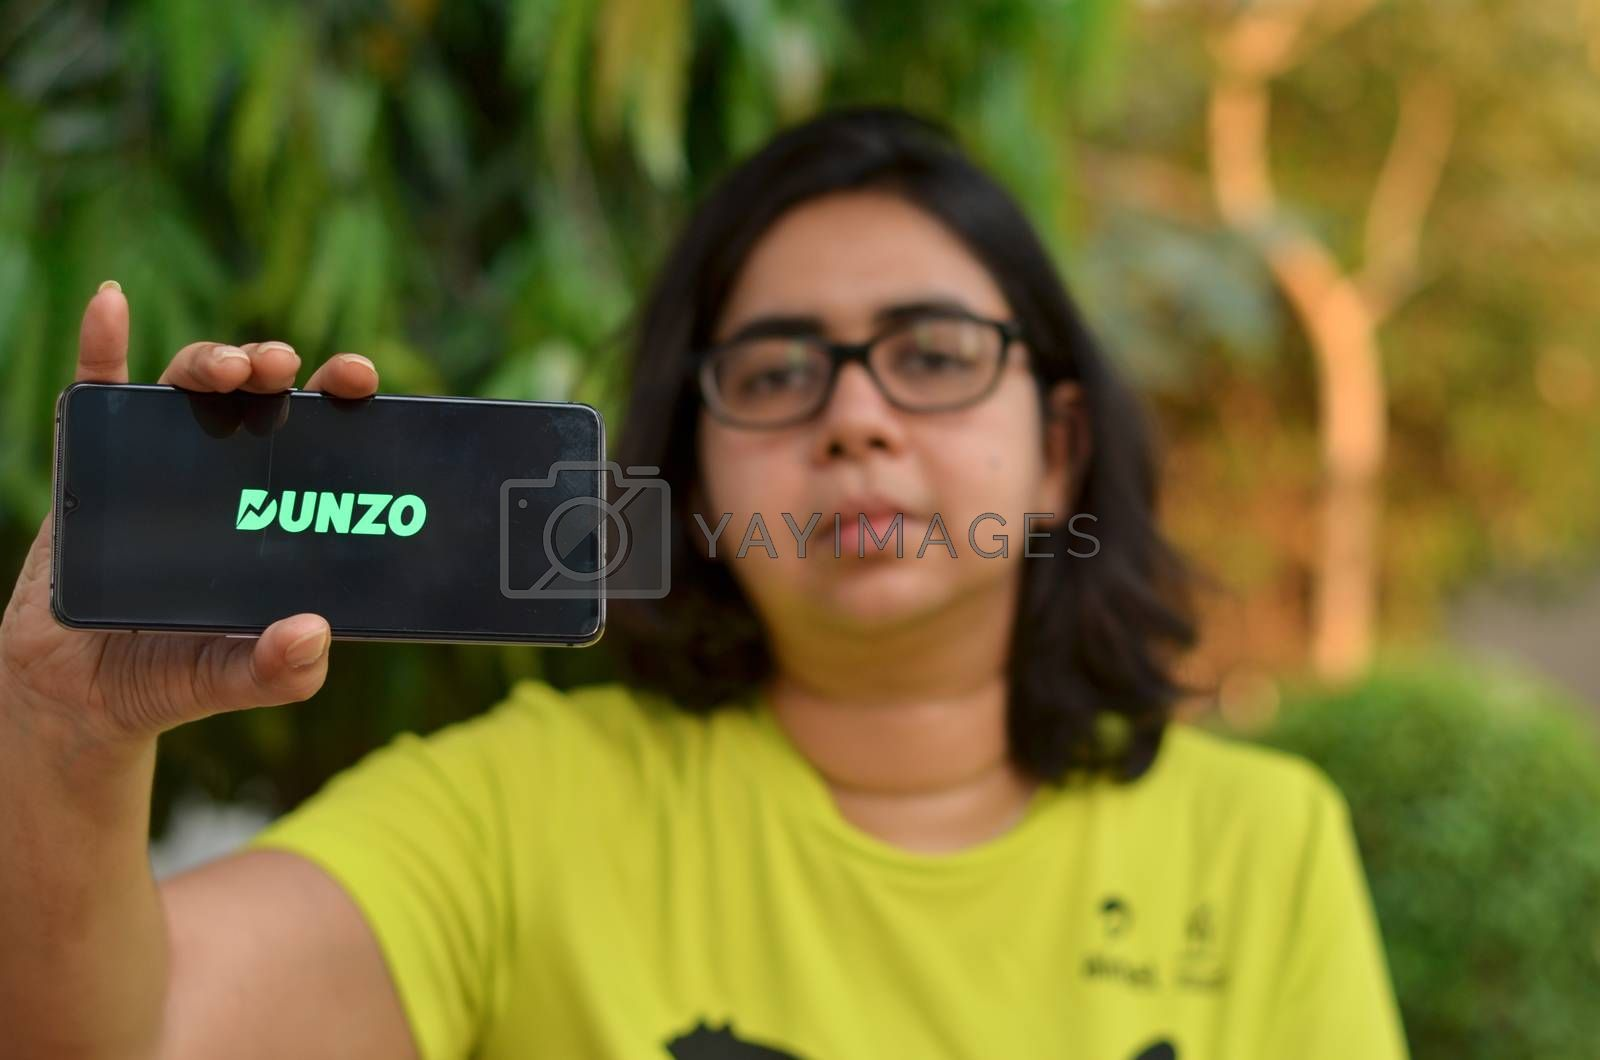 Mumbai, India, 2020. Young Girl with Dunzo Delivery app logo glowing on the mobile phone screen in her hands. Selective focus and shallow depth of field. The main focus is on the logo. by jayantbahel